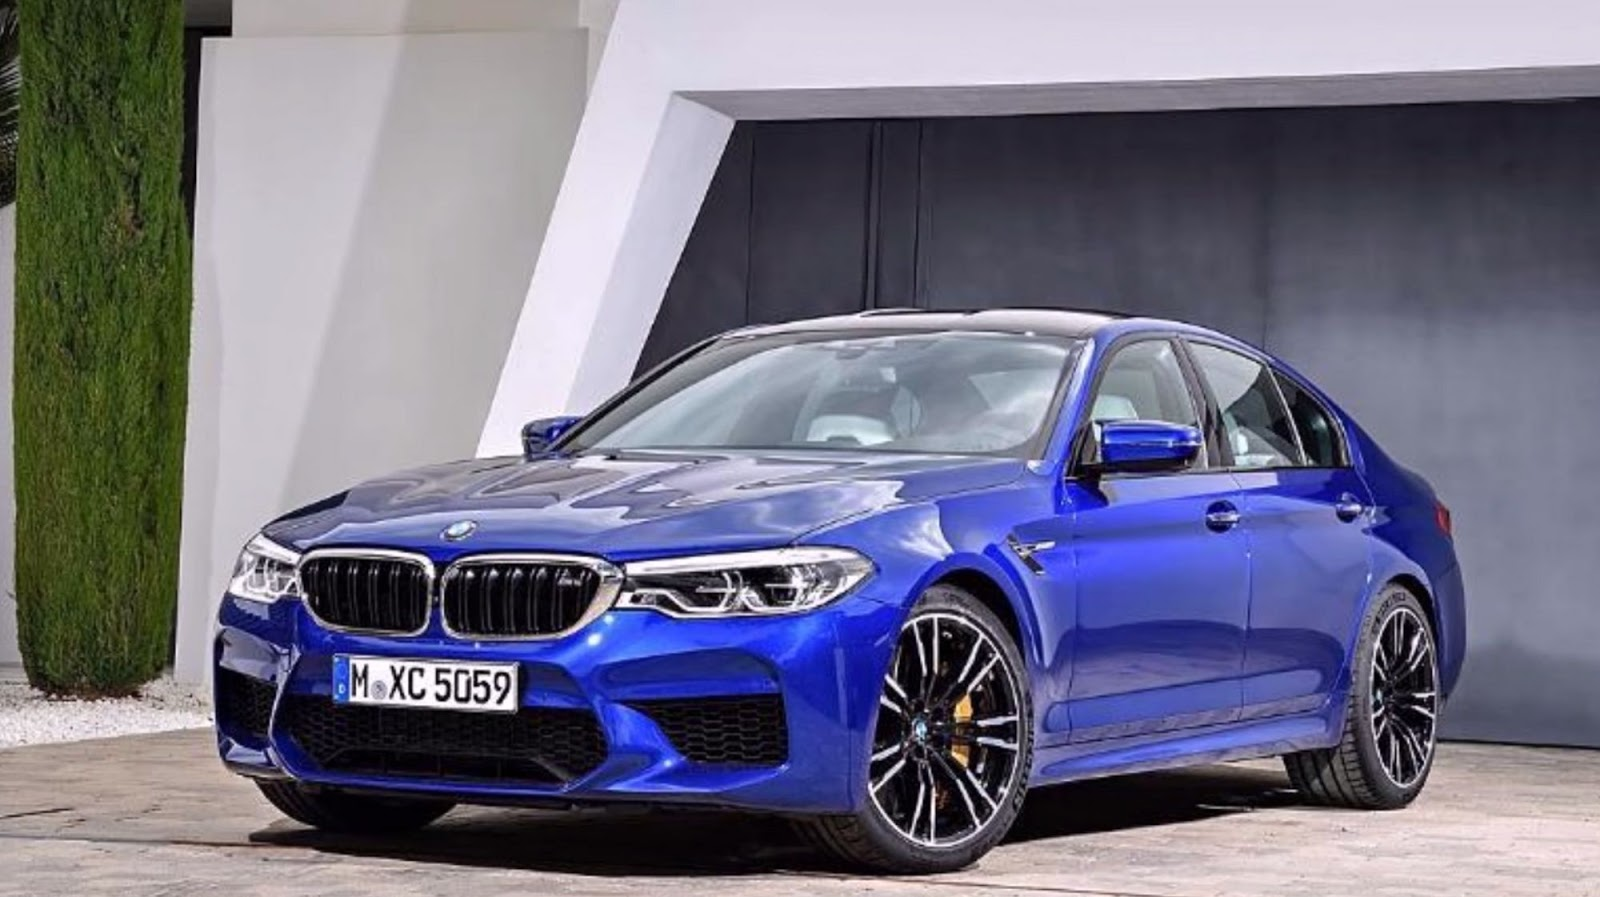 2018 bmw m5 leaks online before global premiere carscoops. Black Bedroom Furniture Sets. Home Design Ideas